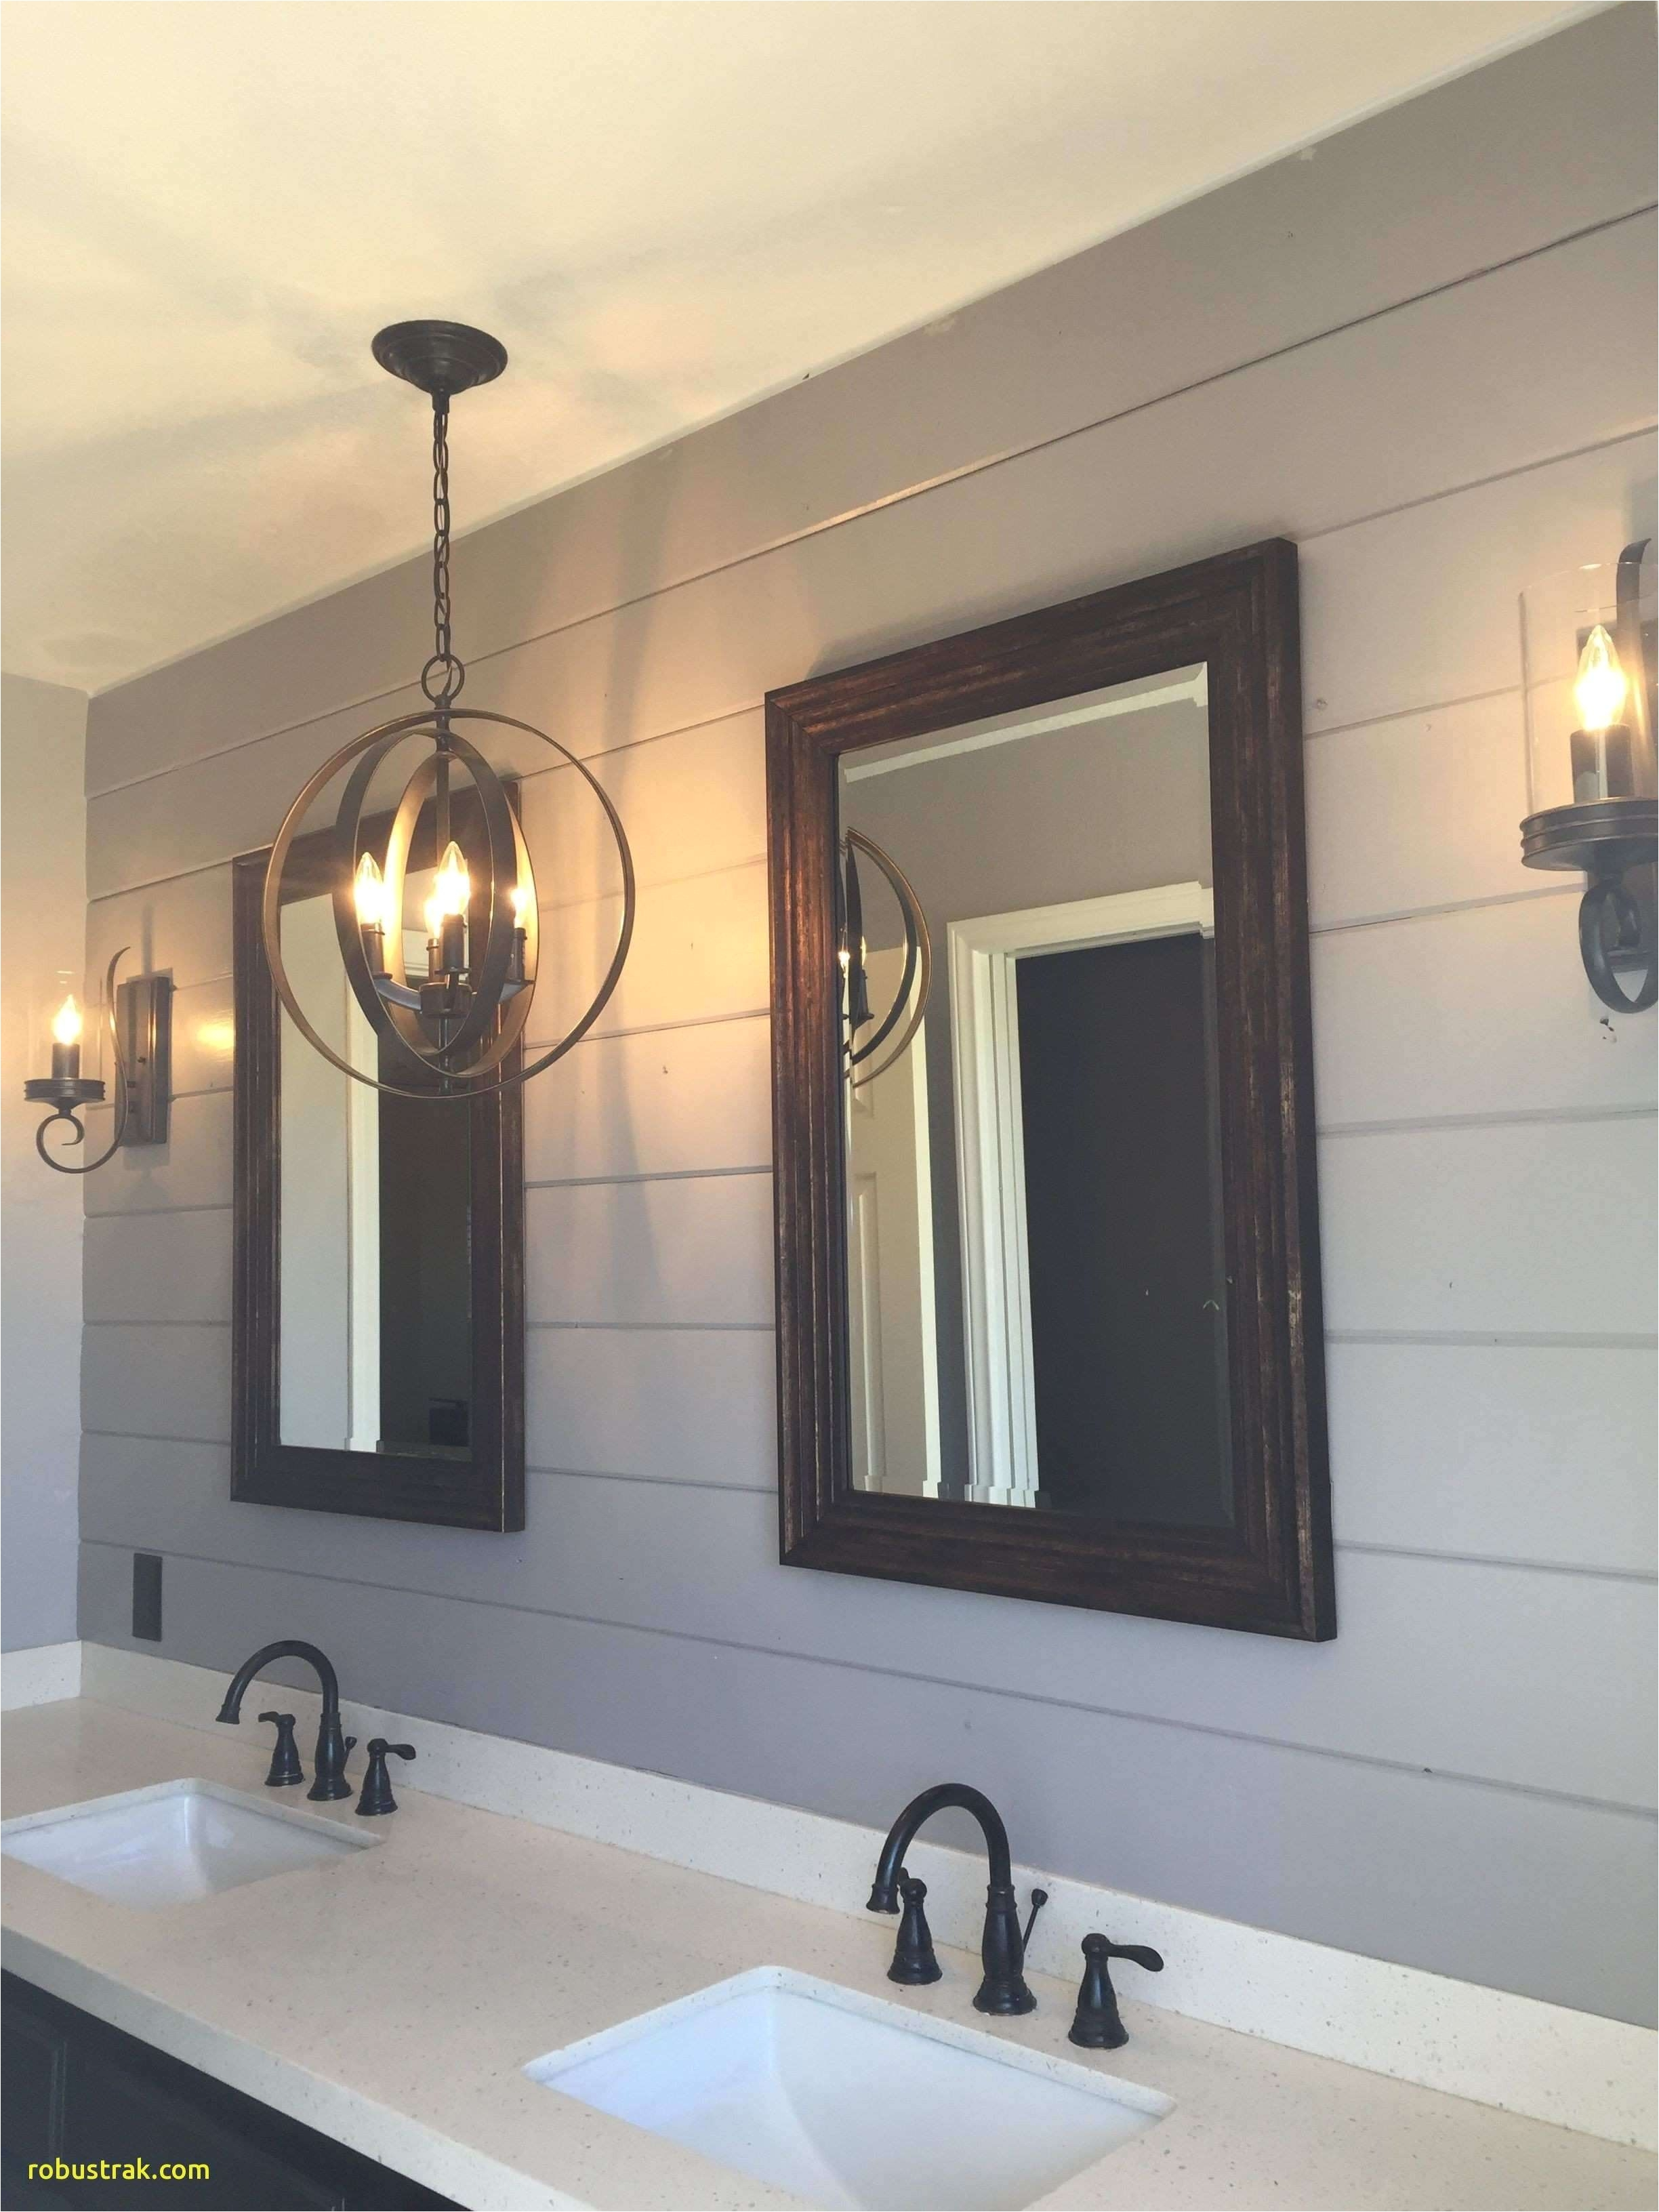 pottery barn vases luxury 34 awesome barn light bathroom douglaschannelenergy